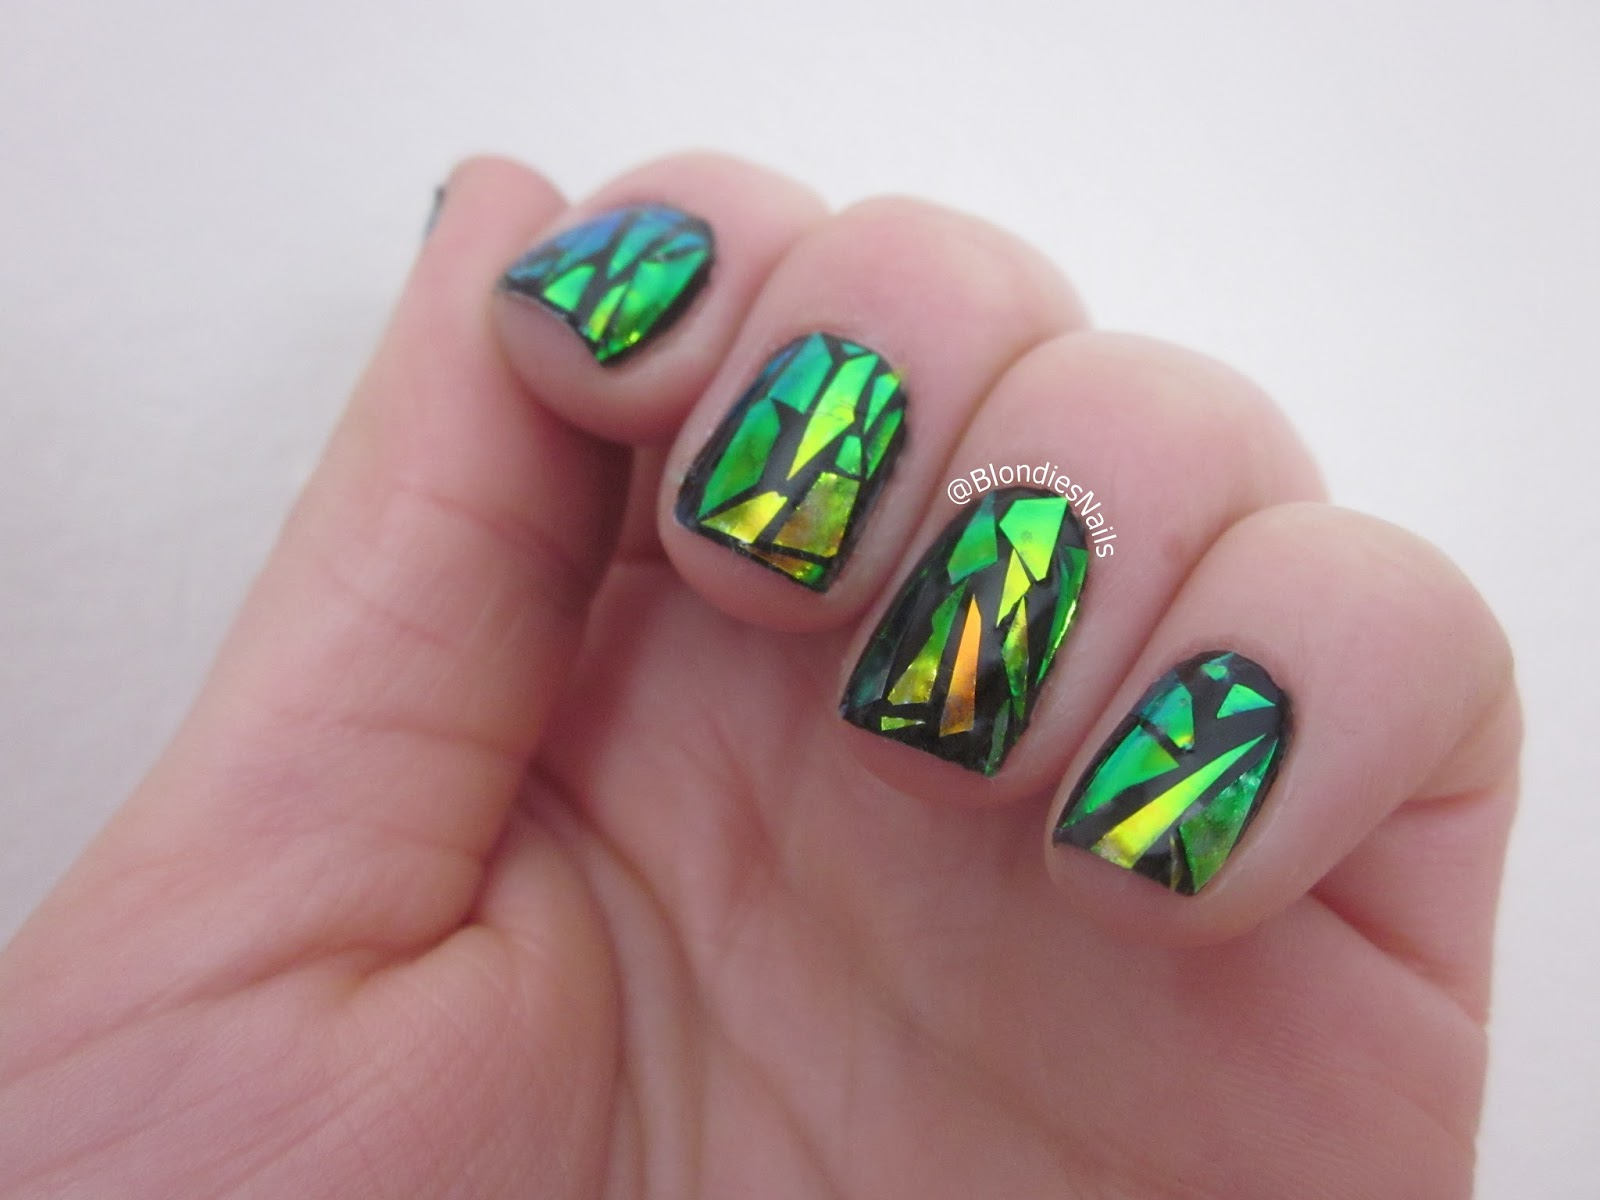 Blondie\'s Nails: Shattered Glass Nail Art - A Tell All Tale